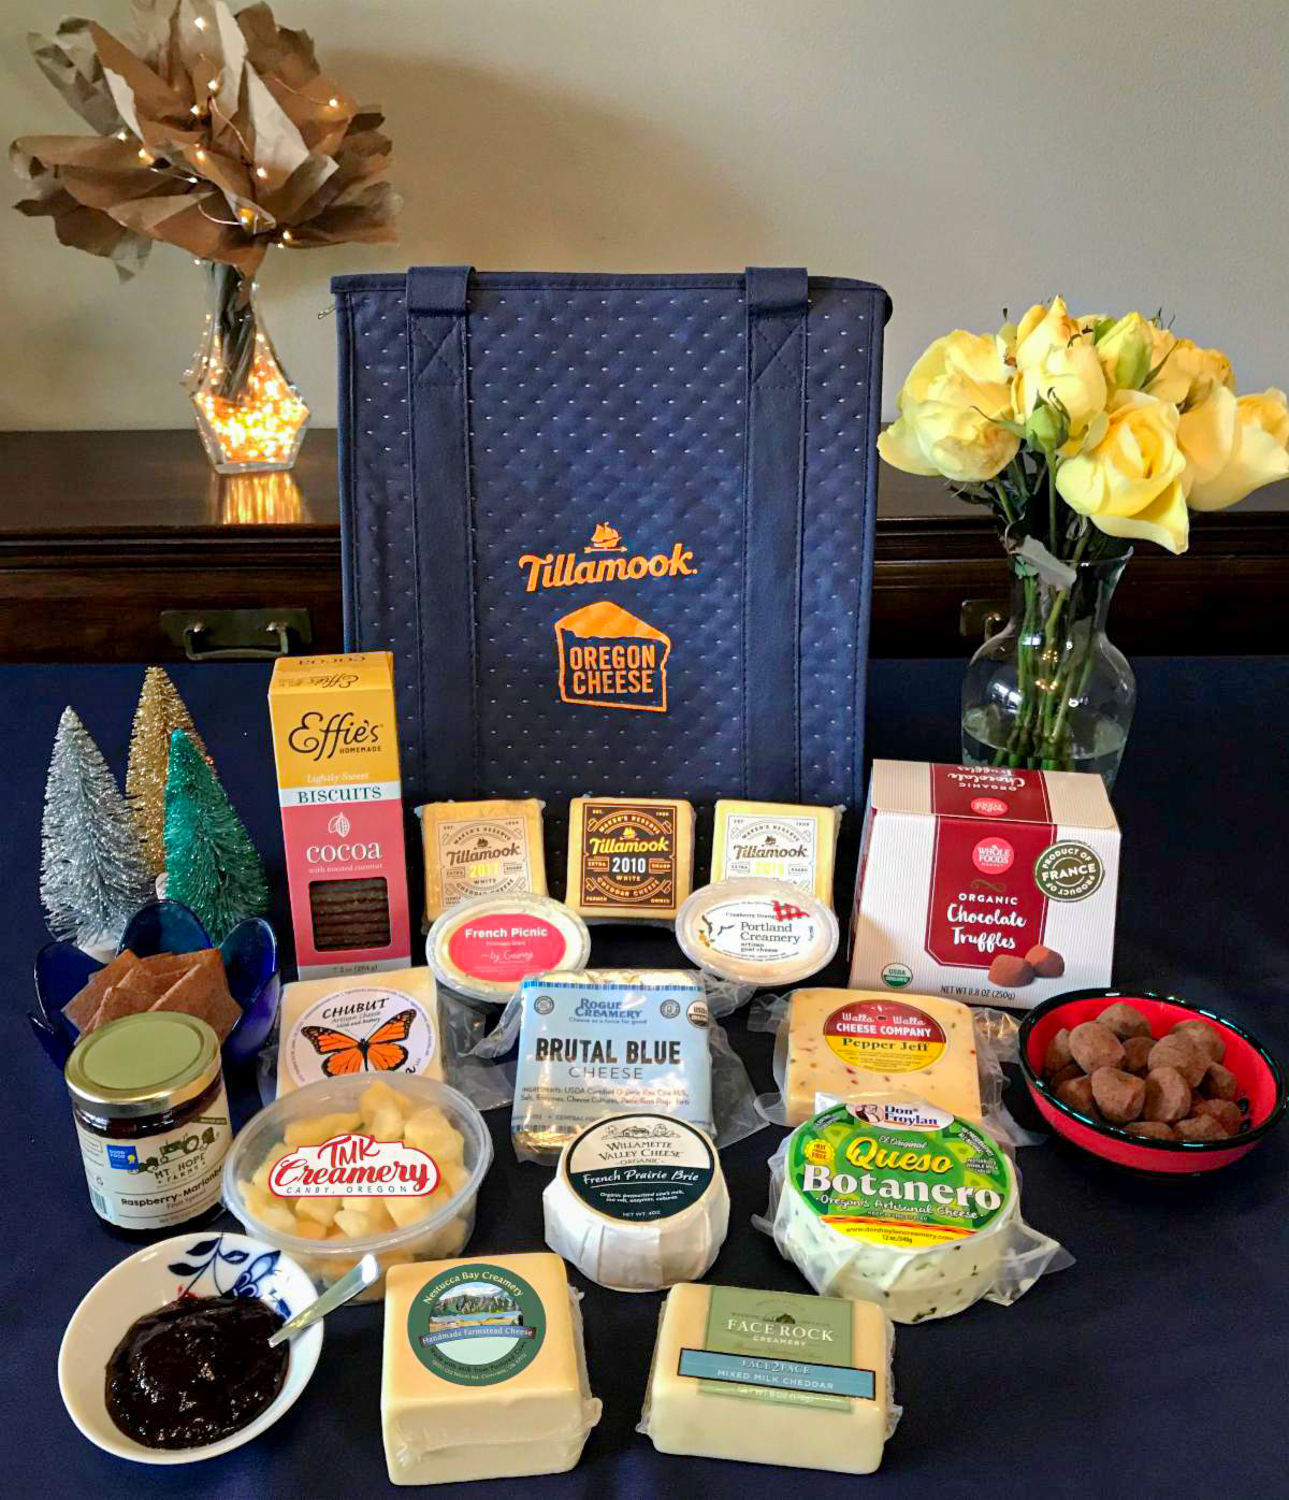 The Oregon Cheese Guild's Winter Wedge Cheese Extravaganza - How to Save $15! Culinary Treasure Network Steven Shomler